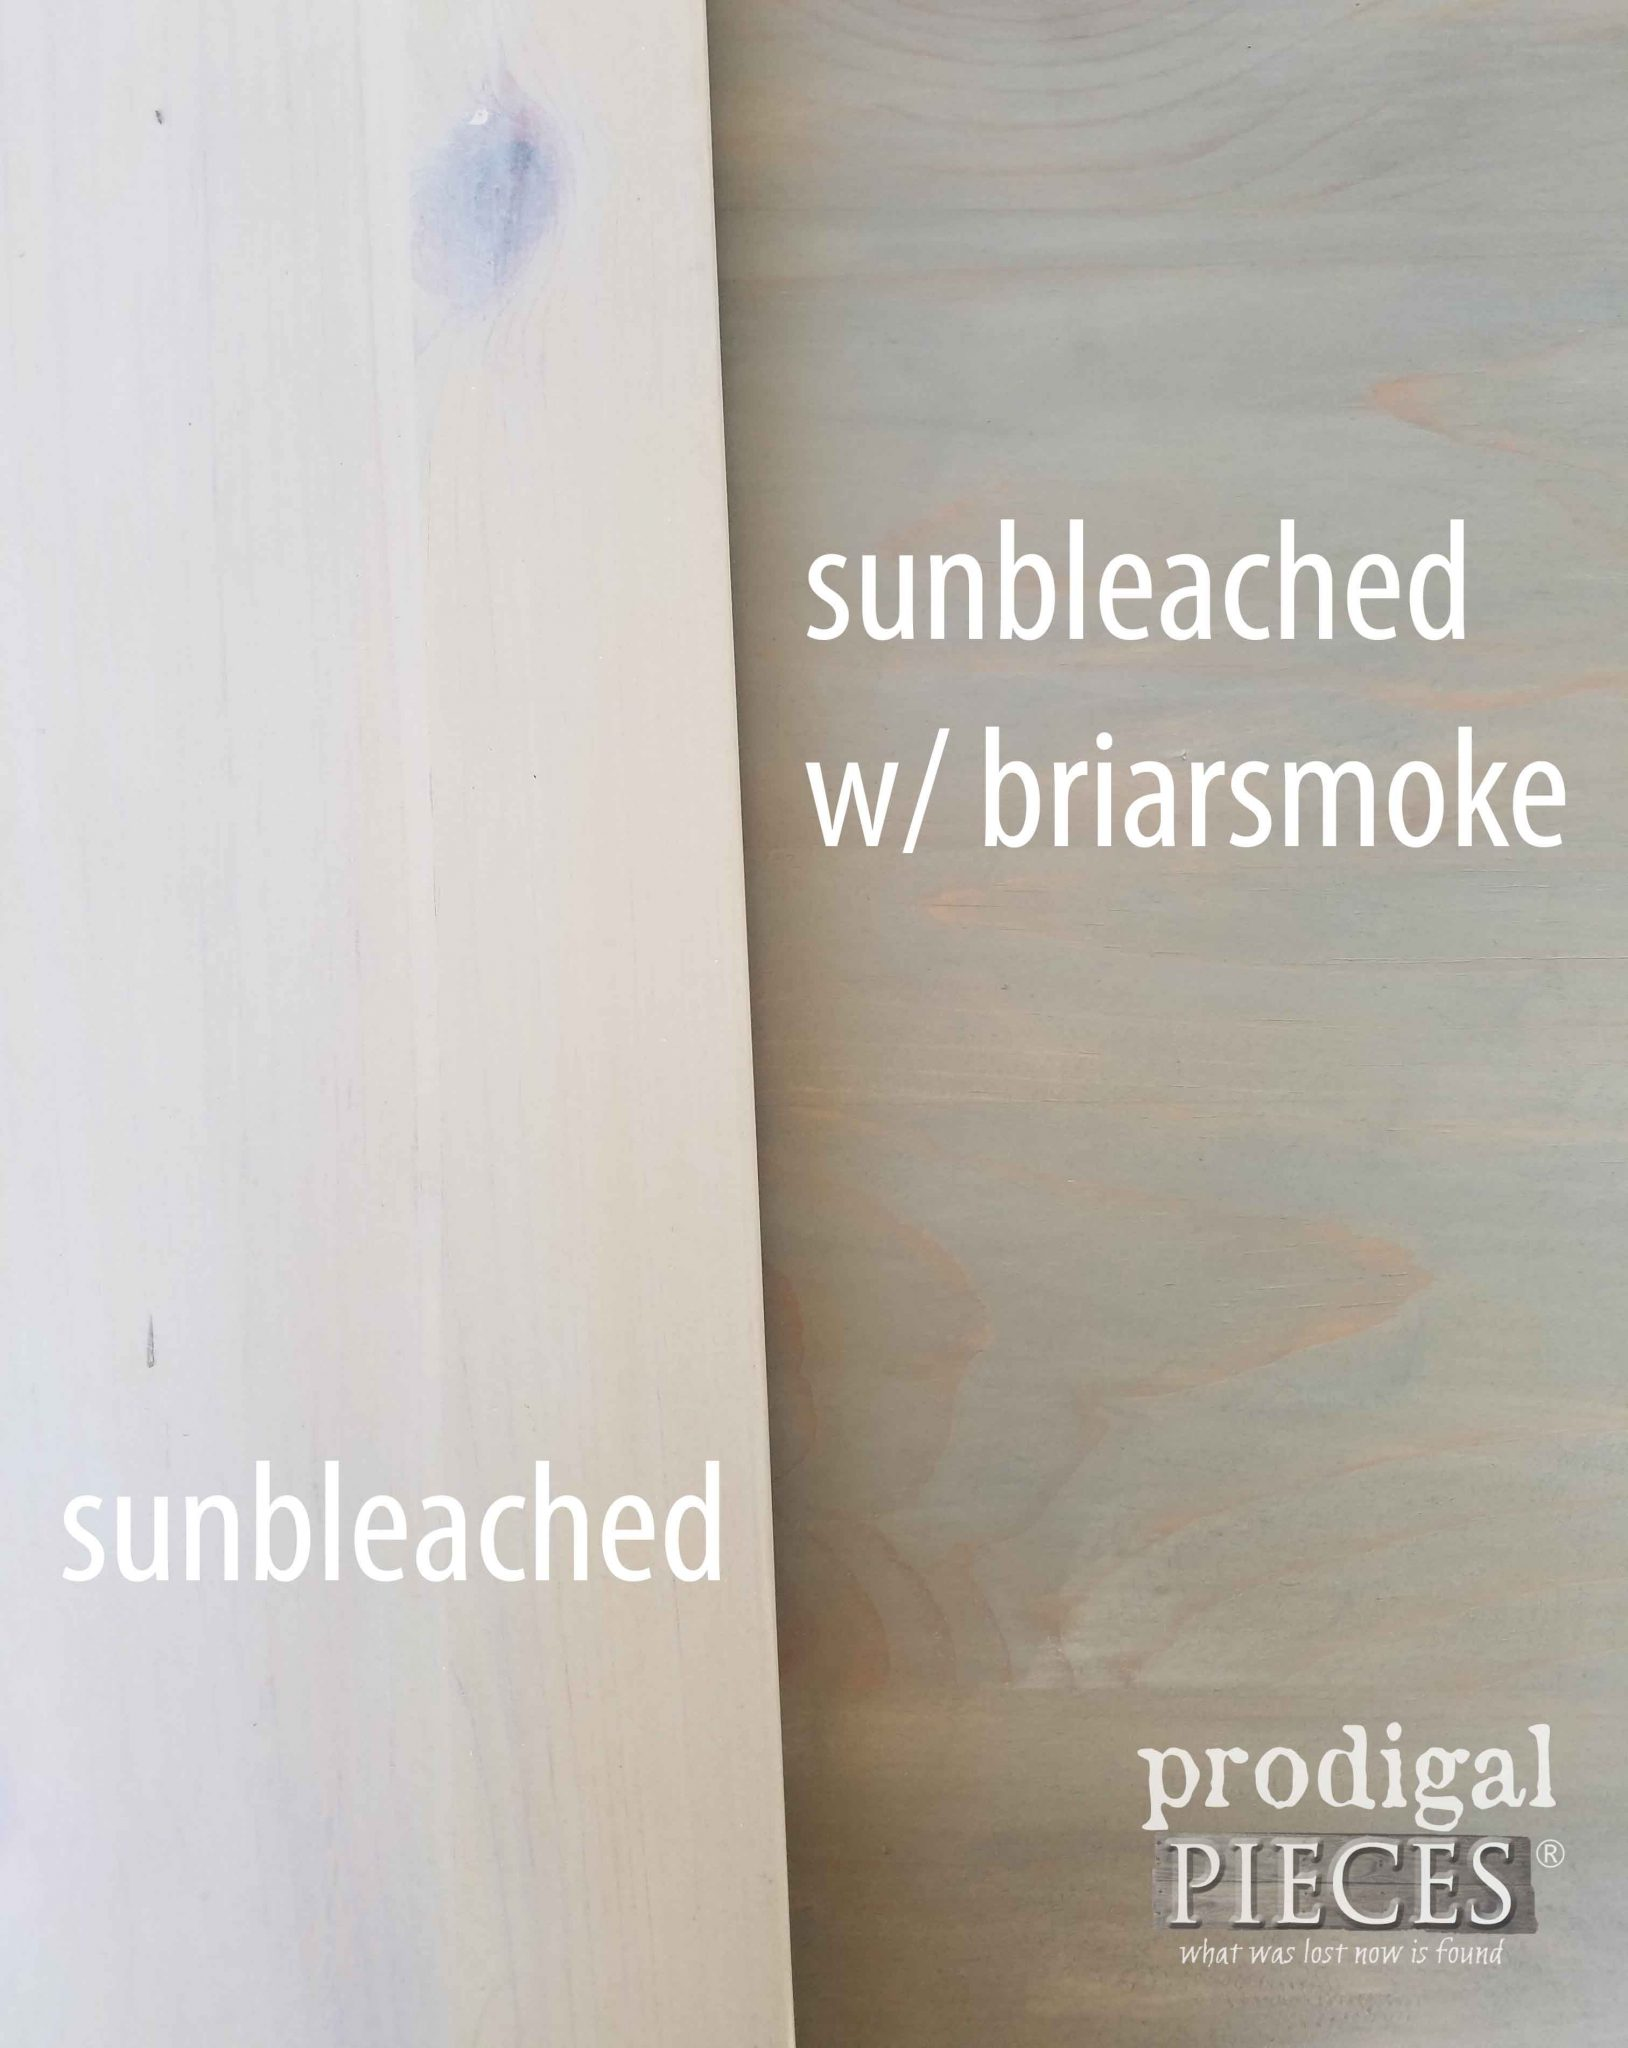 Sunbleached and Briarsmoke Stains Compared for Texture by Prodigal Pieces | prodigalpieces.com